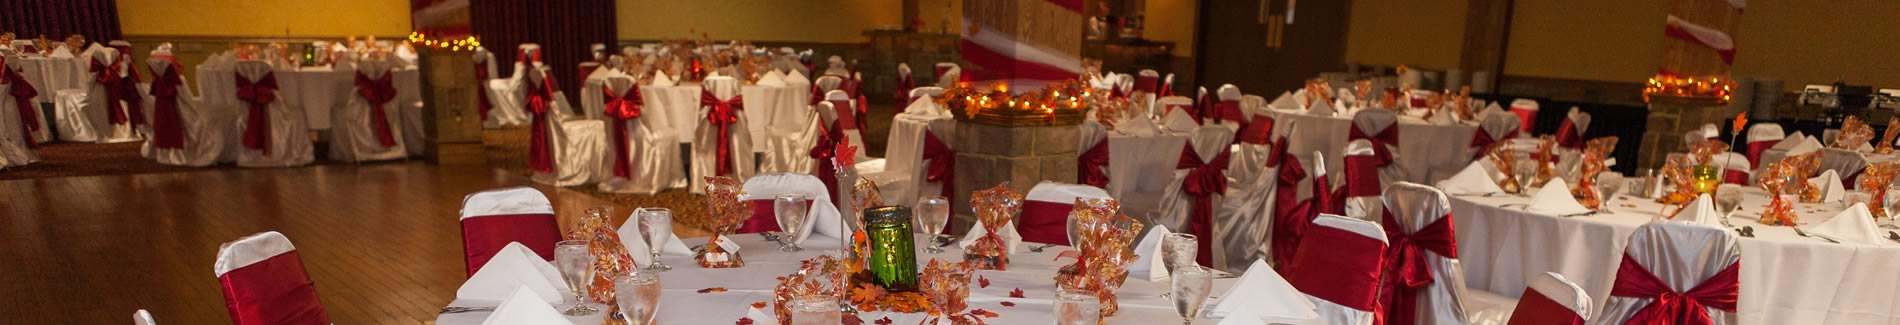 wedding venues port huron mi